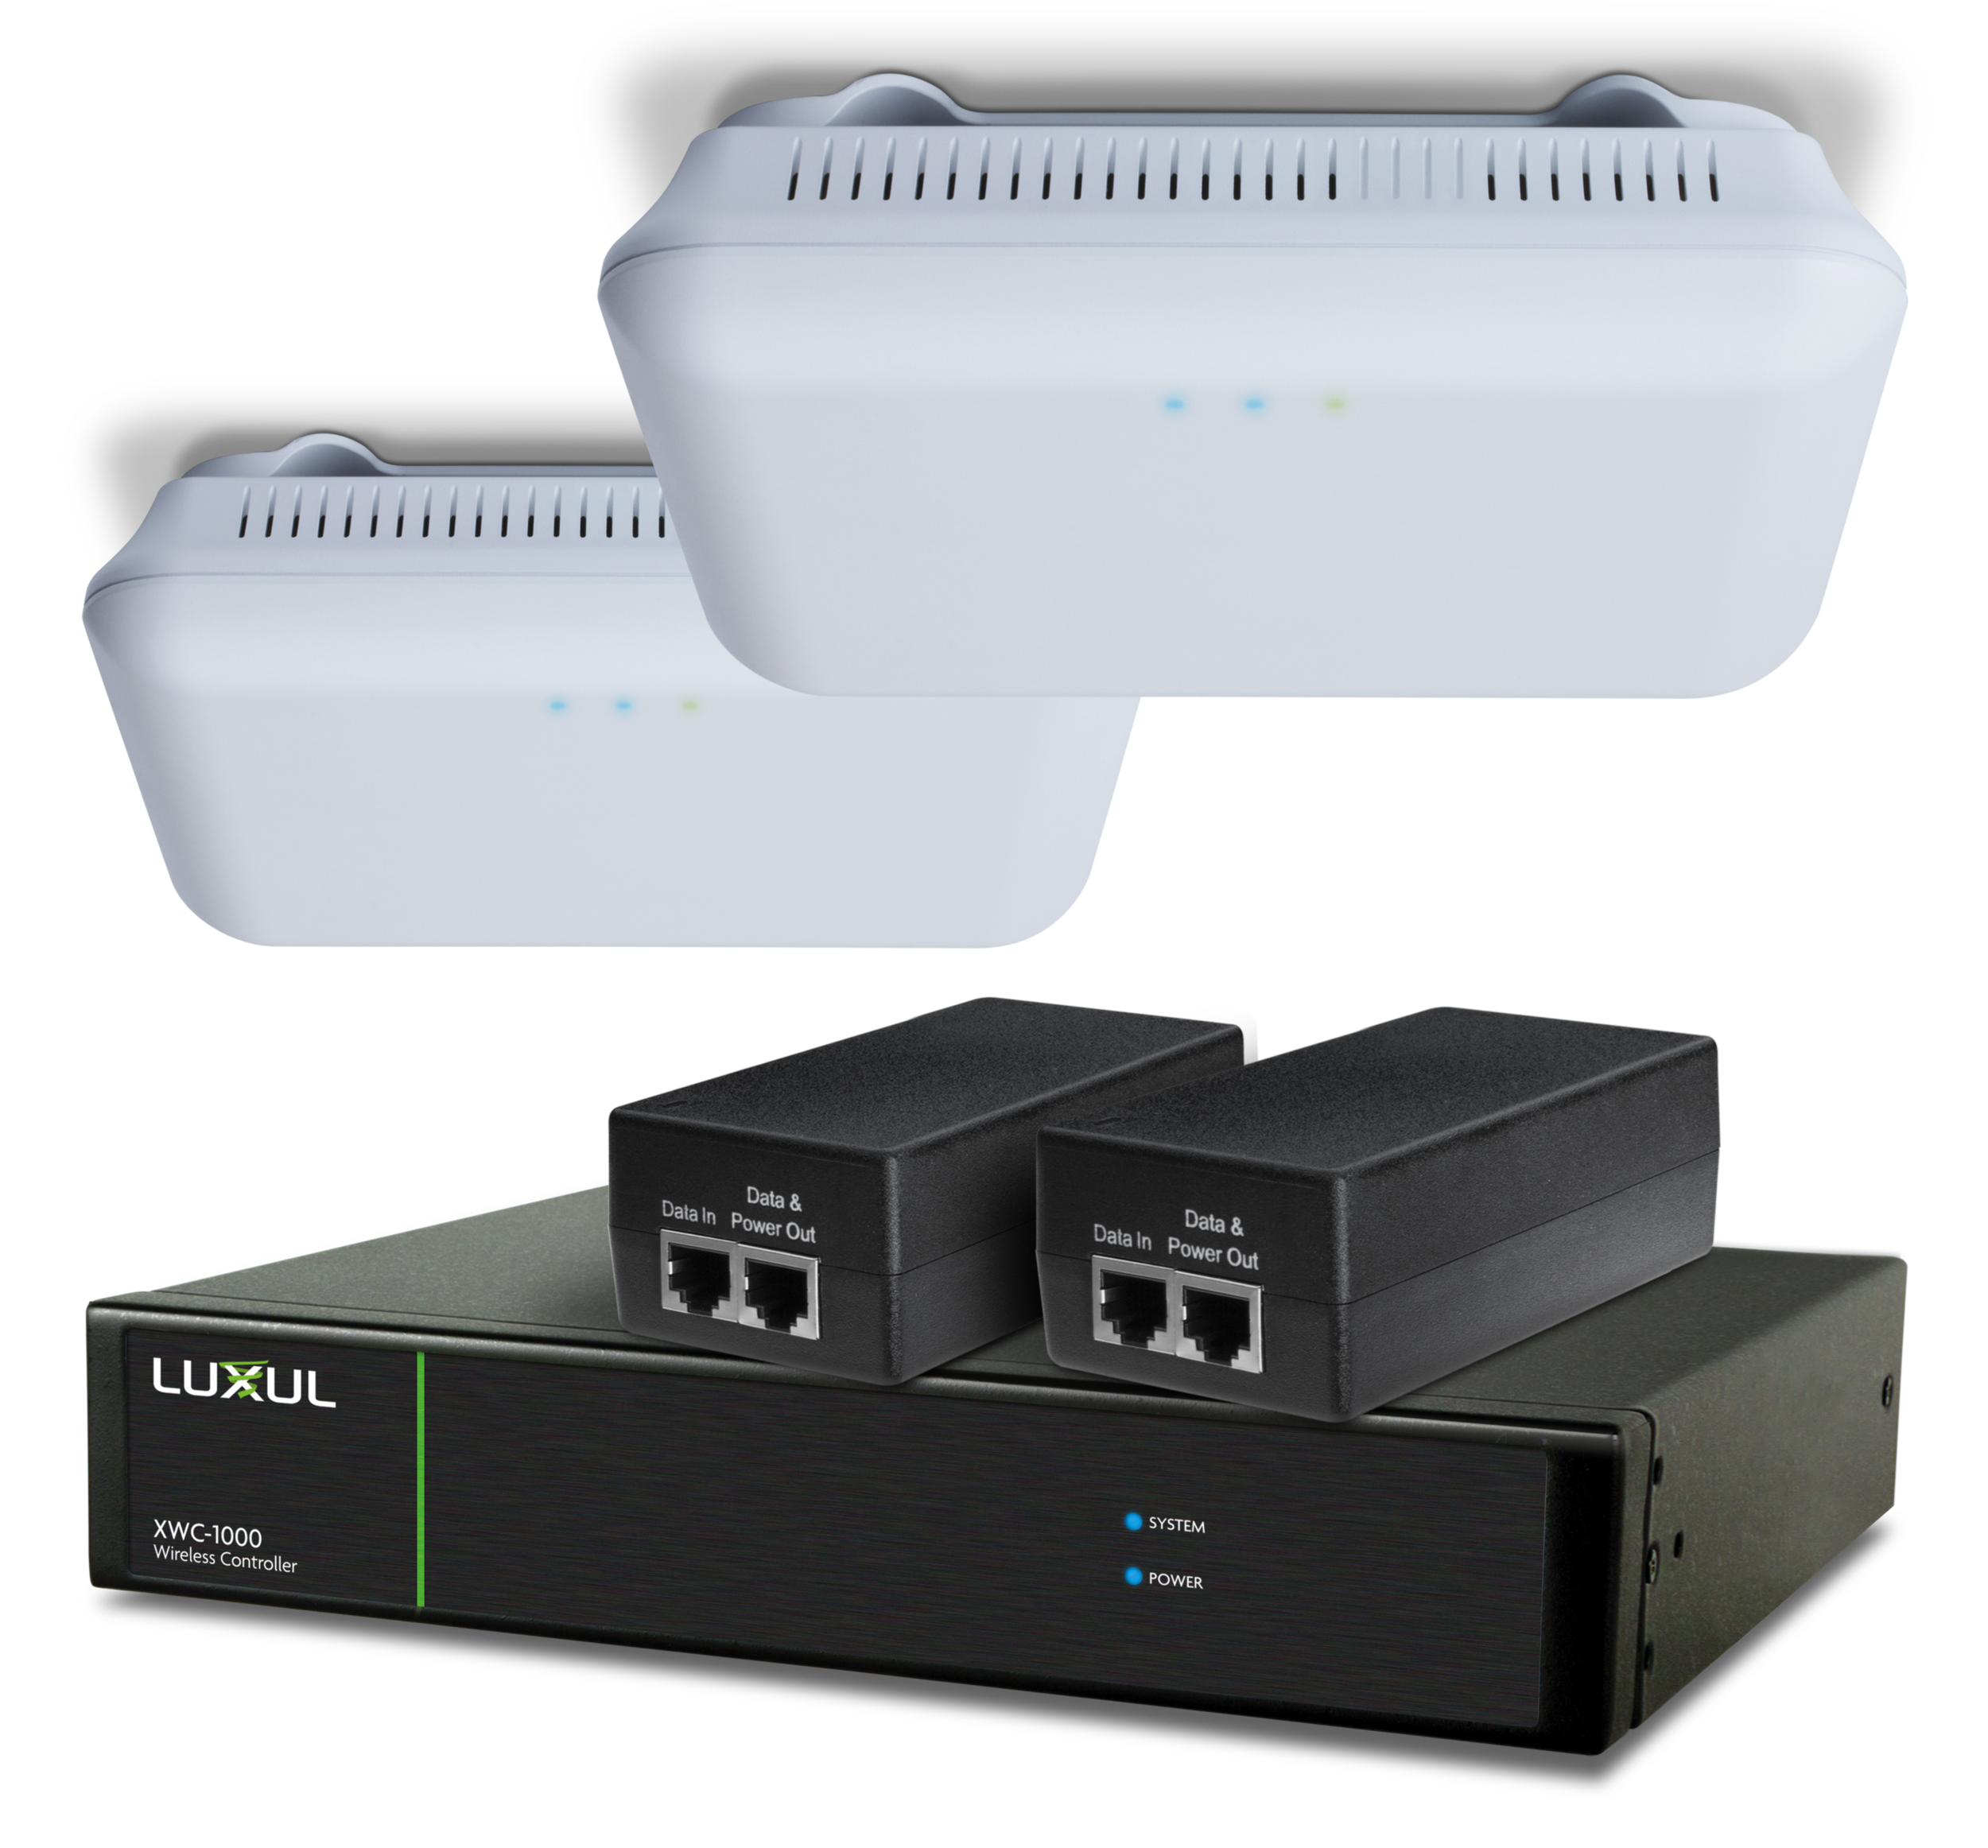 Whole Home Network   The home network is the heart of any home and automation system these days. The ISP provided router is not sufficient to handle the needs of most modest size houses and quanity of devices in a home.